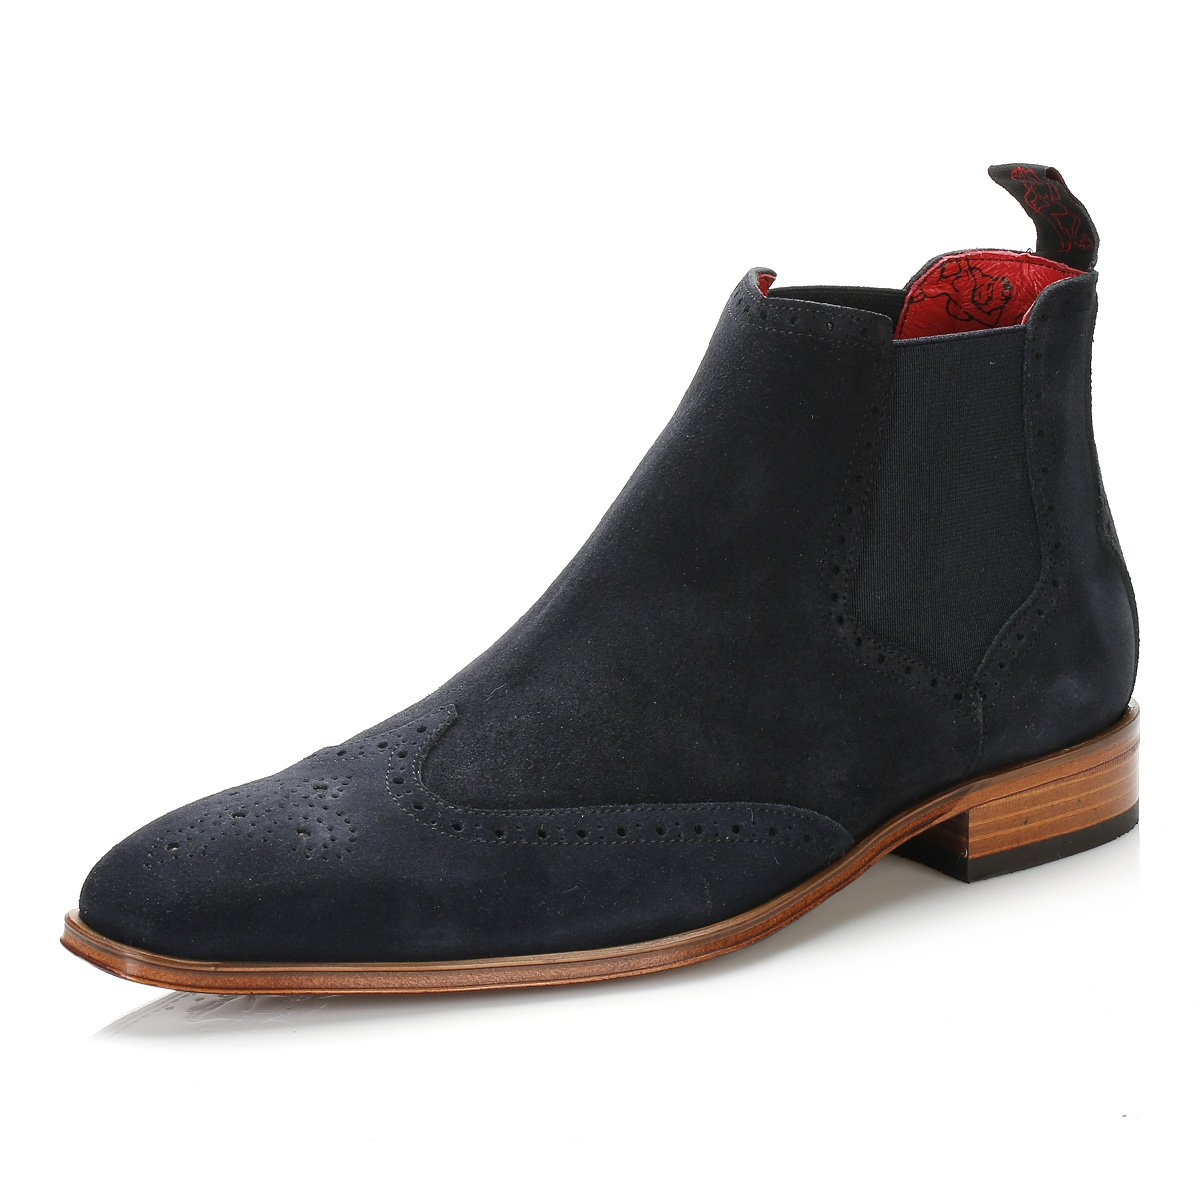 90d08d9c7 Jeffery West Mens Dark Blue Ante Vacuno Capone Brogue Chelsea Boots-UK 11:  Amazon.co.uk: Shoes & Bags